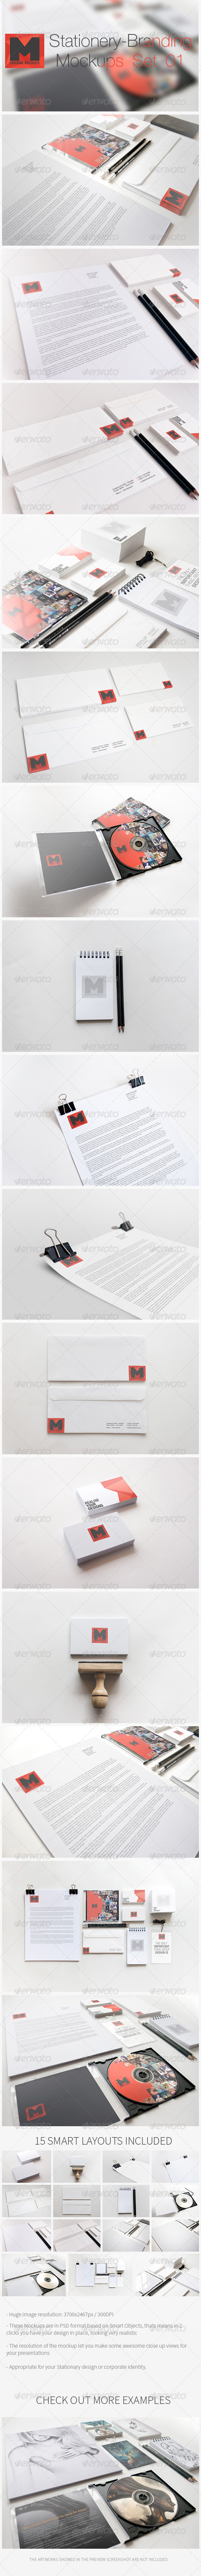 GraphicRiver Stationery Branding Mockups Set 01 4379740